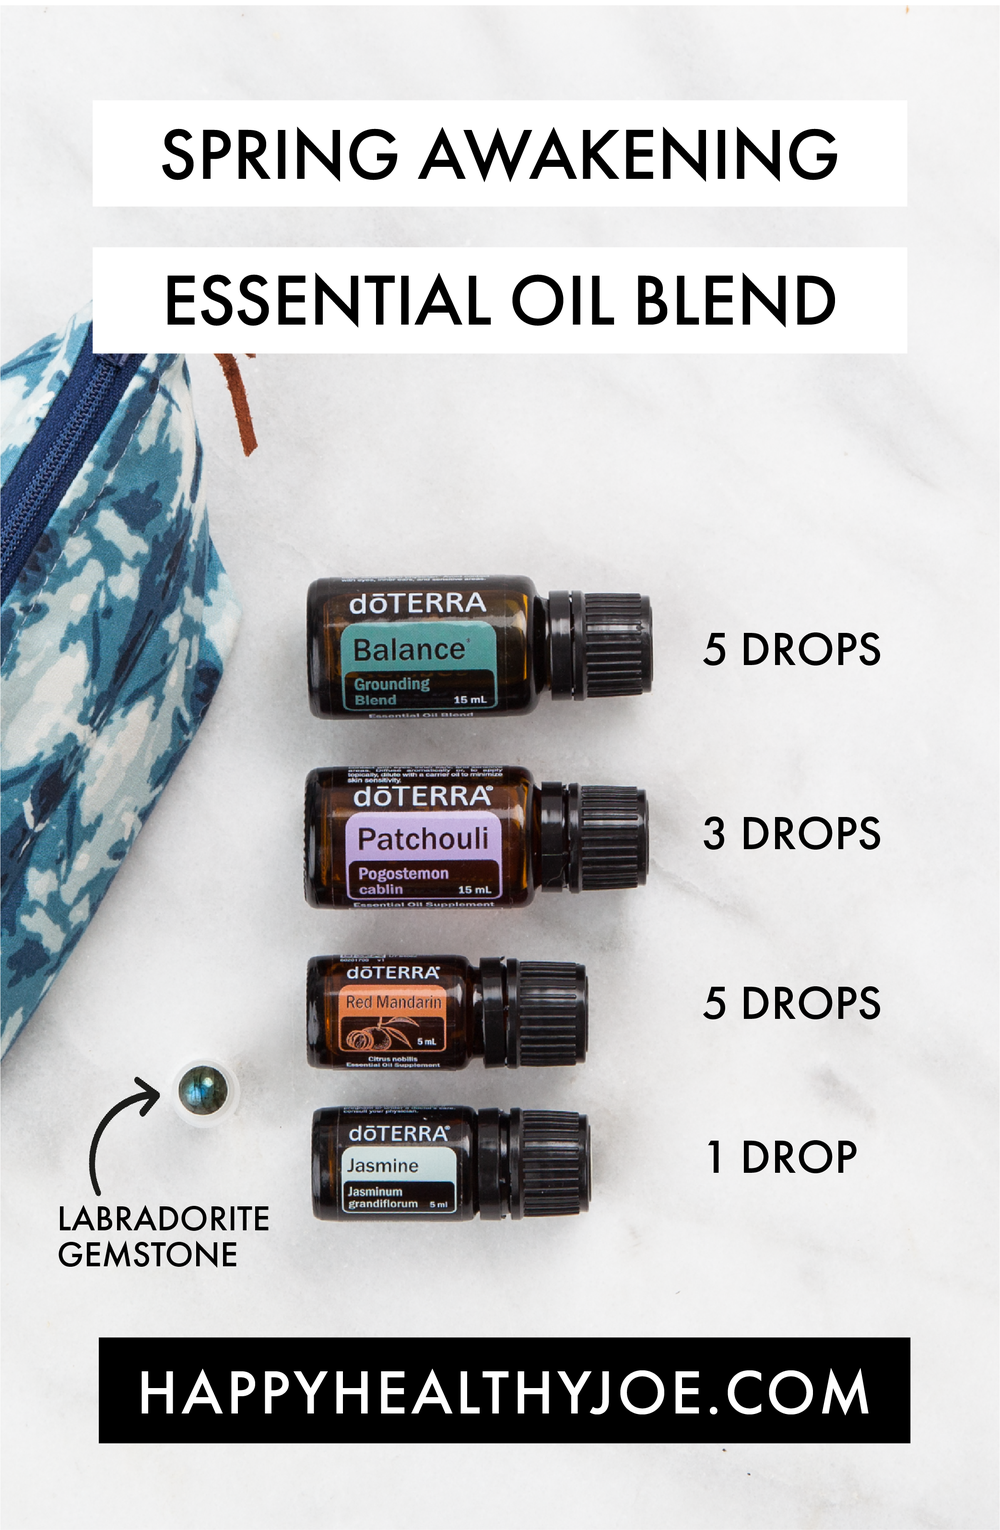 Spring Awakening doTERRA Essential Oil Blend with Labradorite Gemstone Rollerball | Happy Healthy Joe